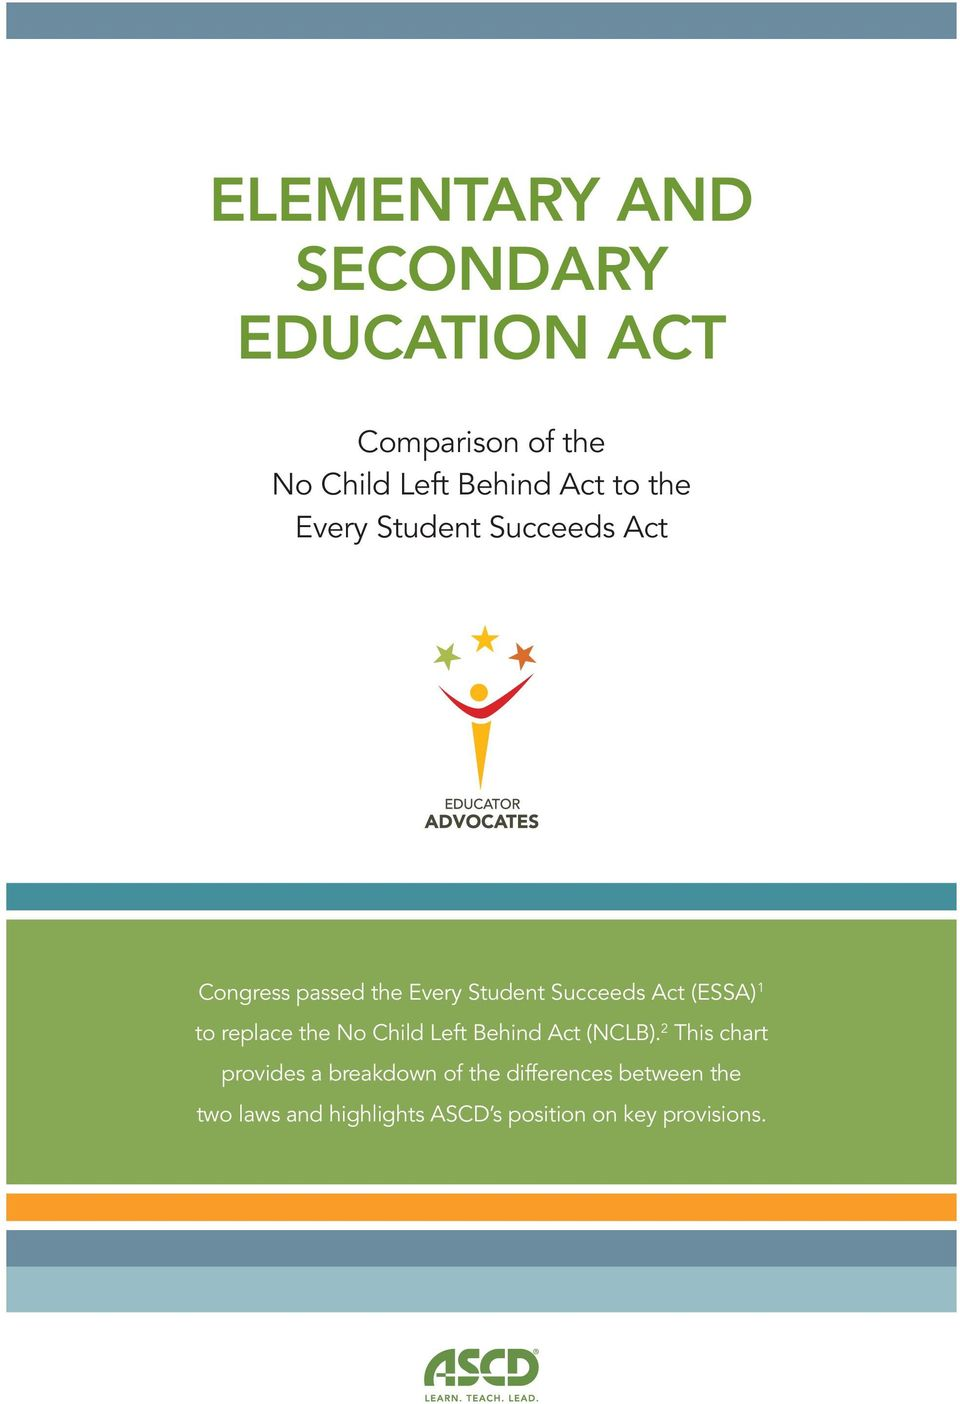 1 to replace the No Child Left Behind Act (NCLB).